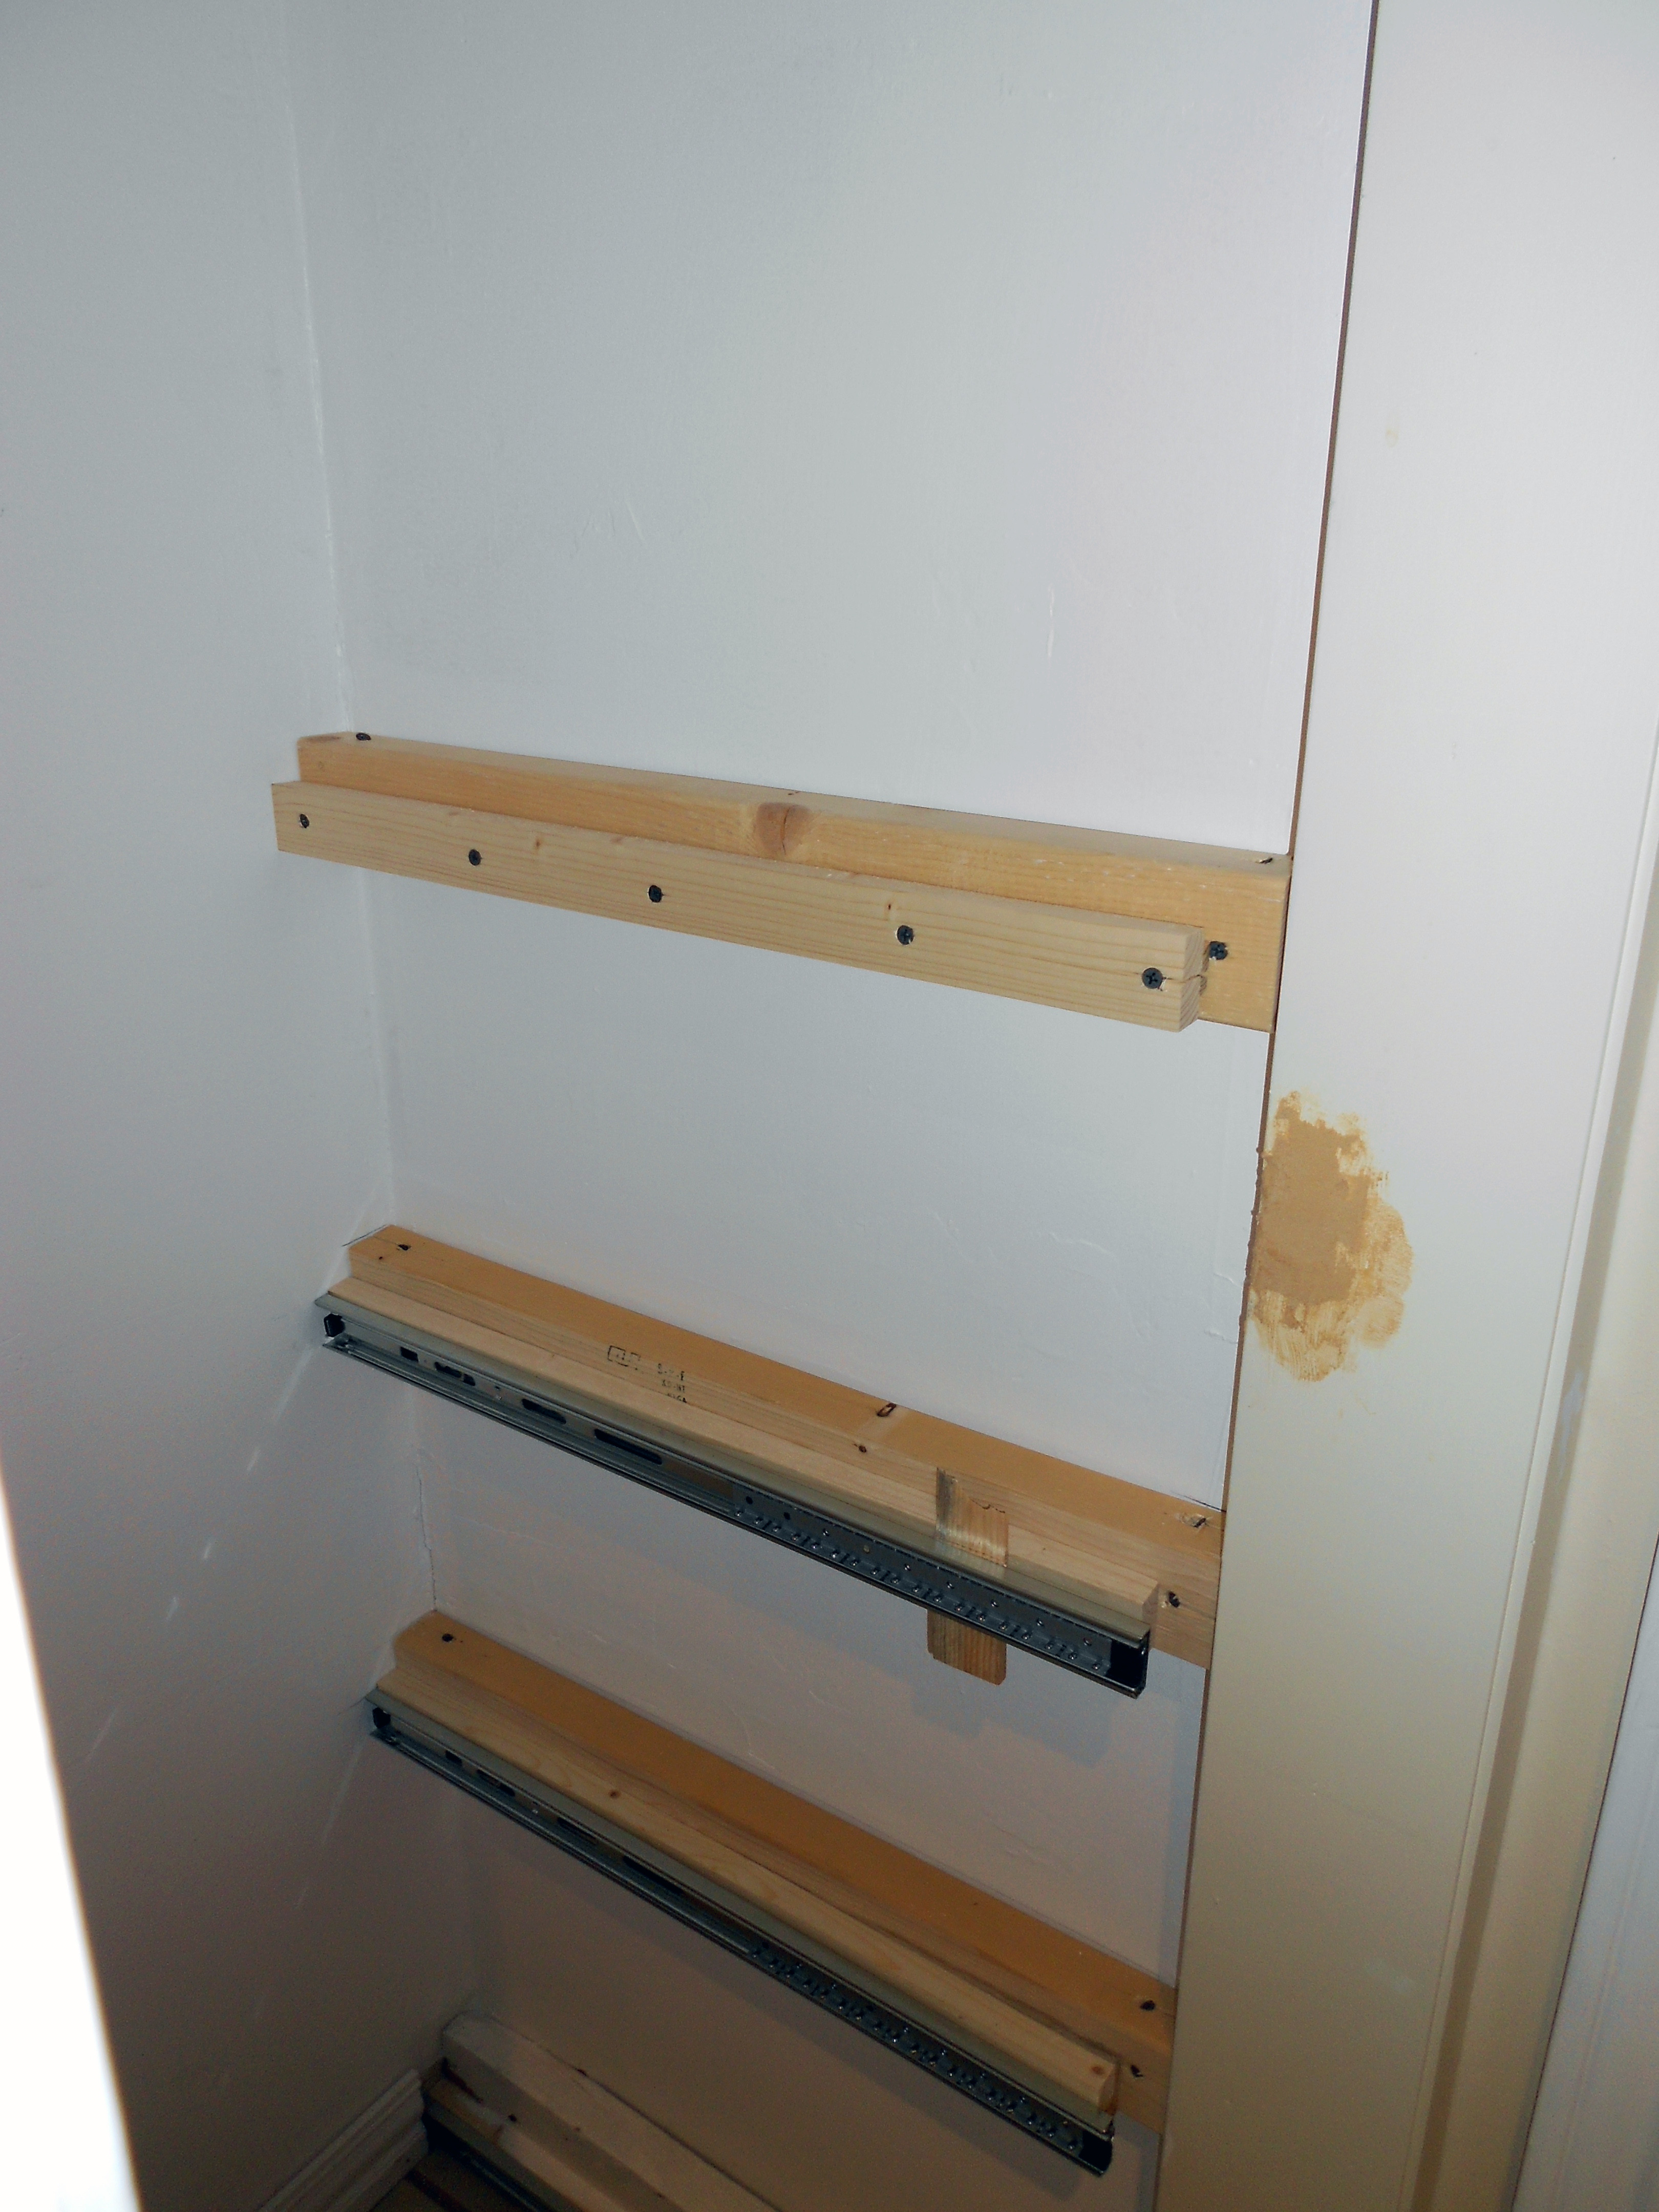 Best ideas about DIY Pull Out Shelves . Save or Pin 301 Moved Permanently Now.